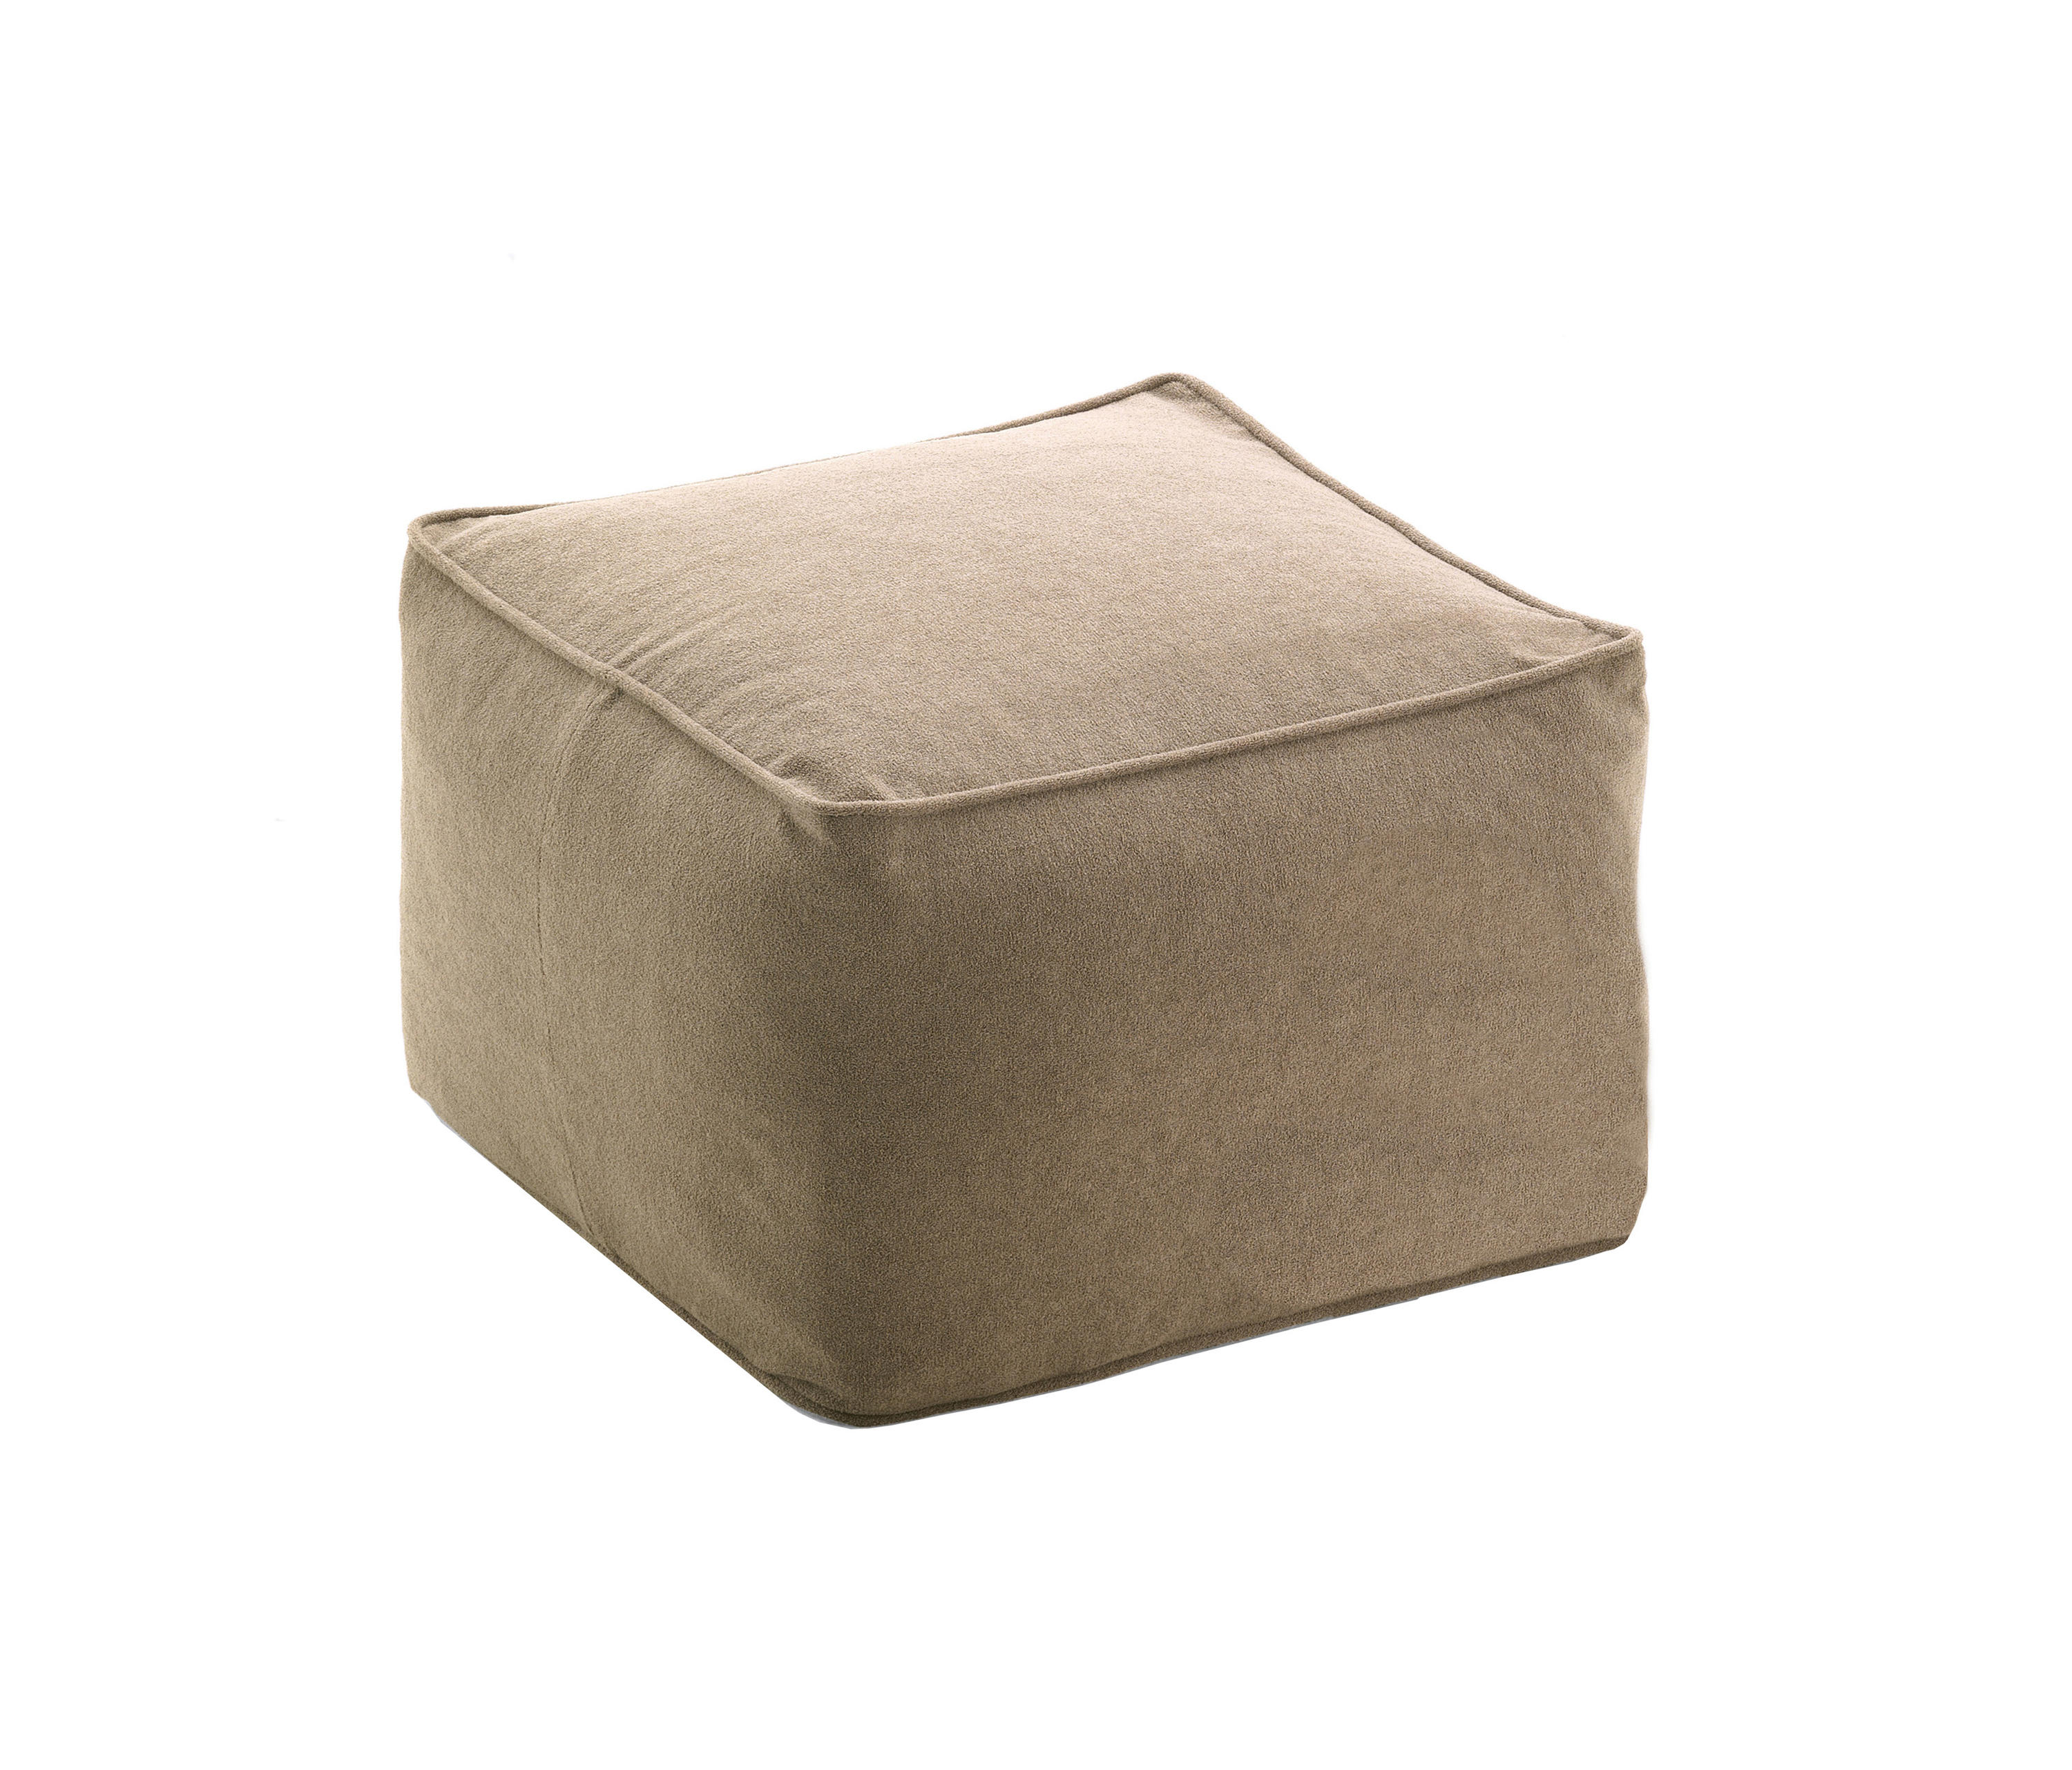 moon pouf square poufs from fast architonic. Black Bedroom Furniture Sets. Home Design Ideas